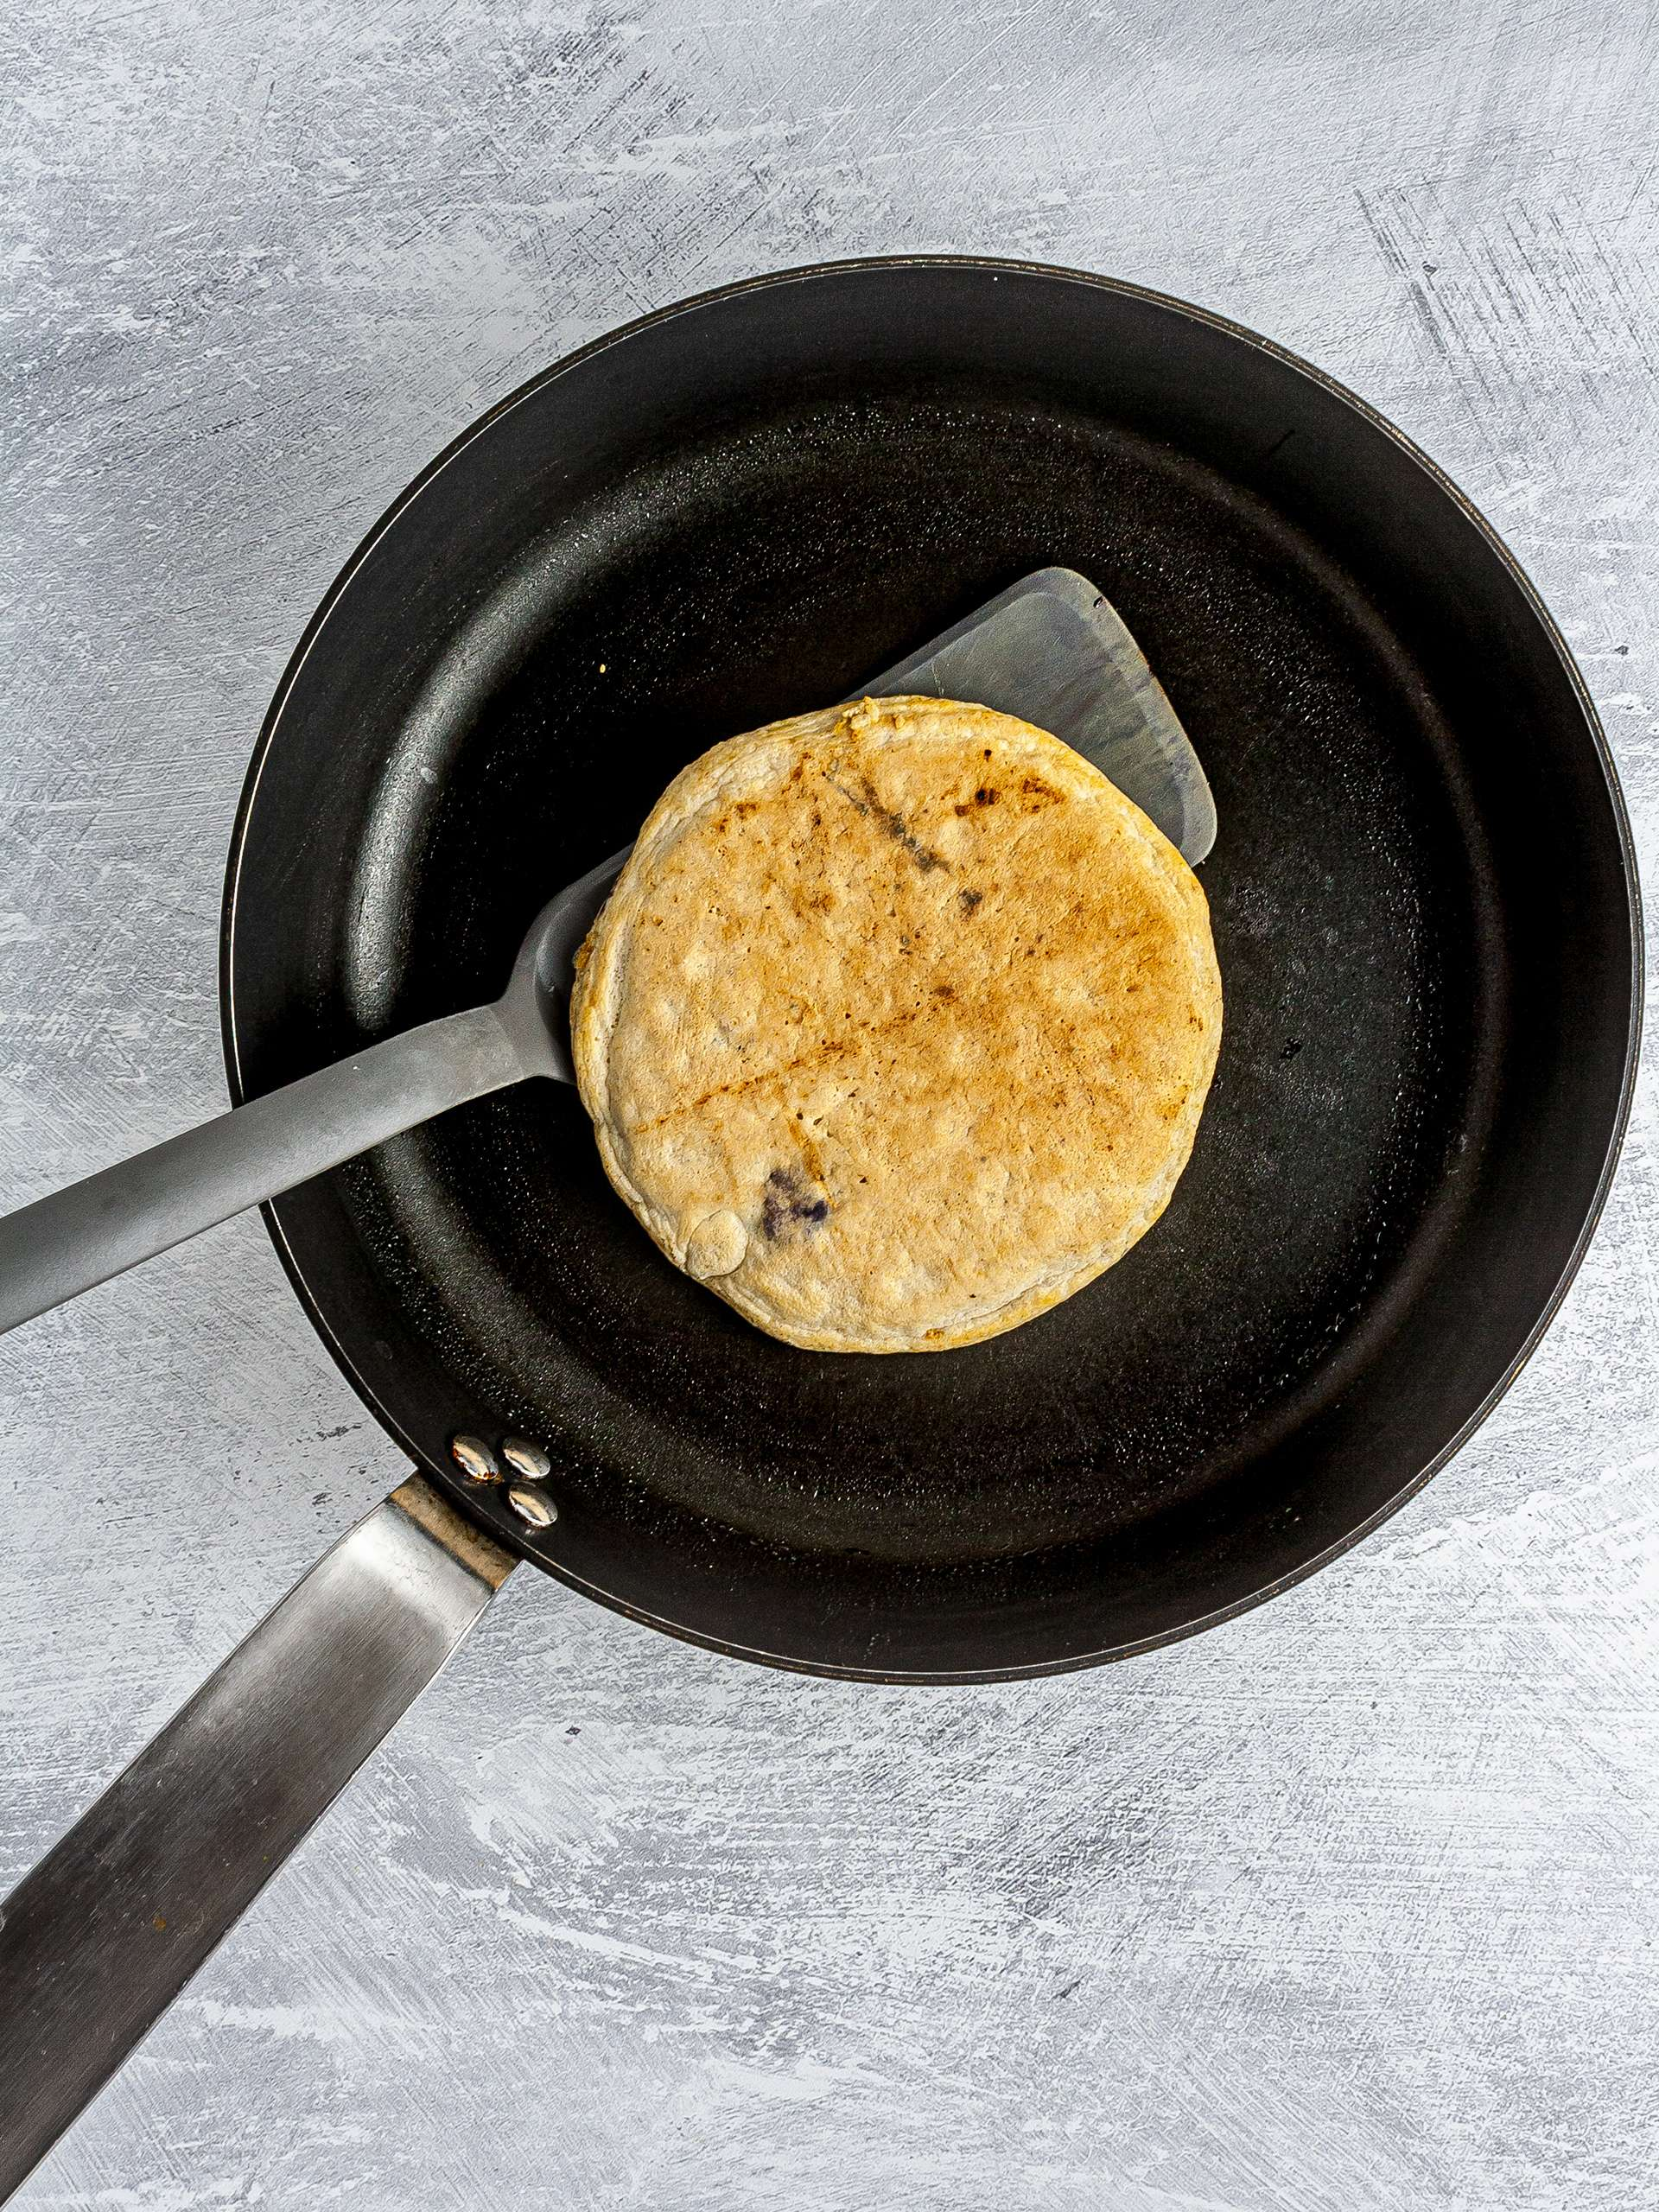 Step 3.2 of Gluten-Free Blueberry Pancakes Recipe